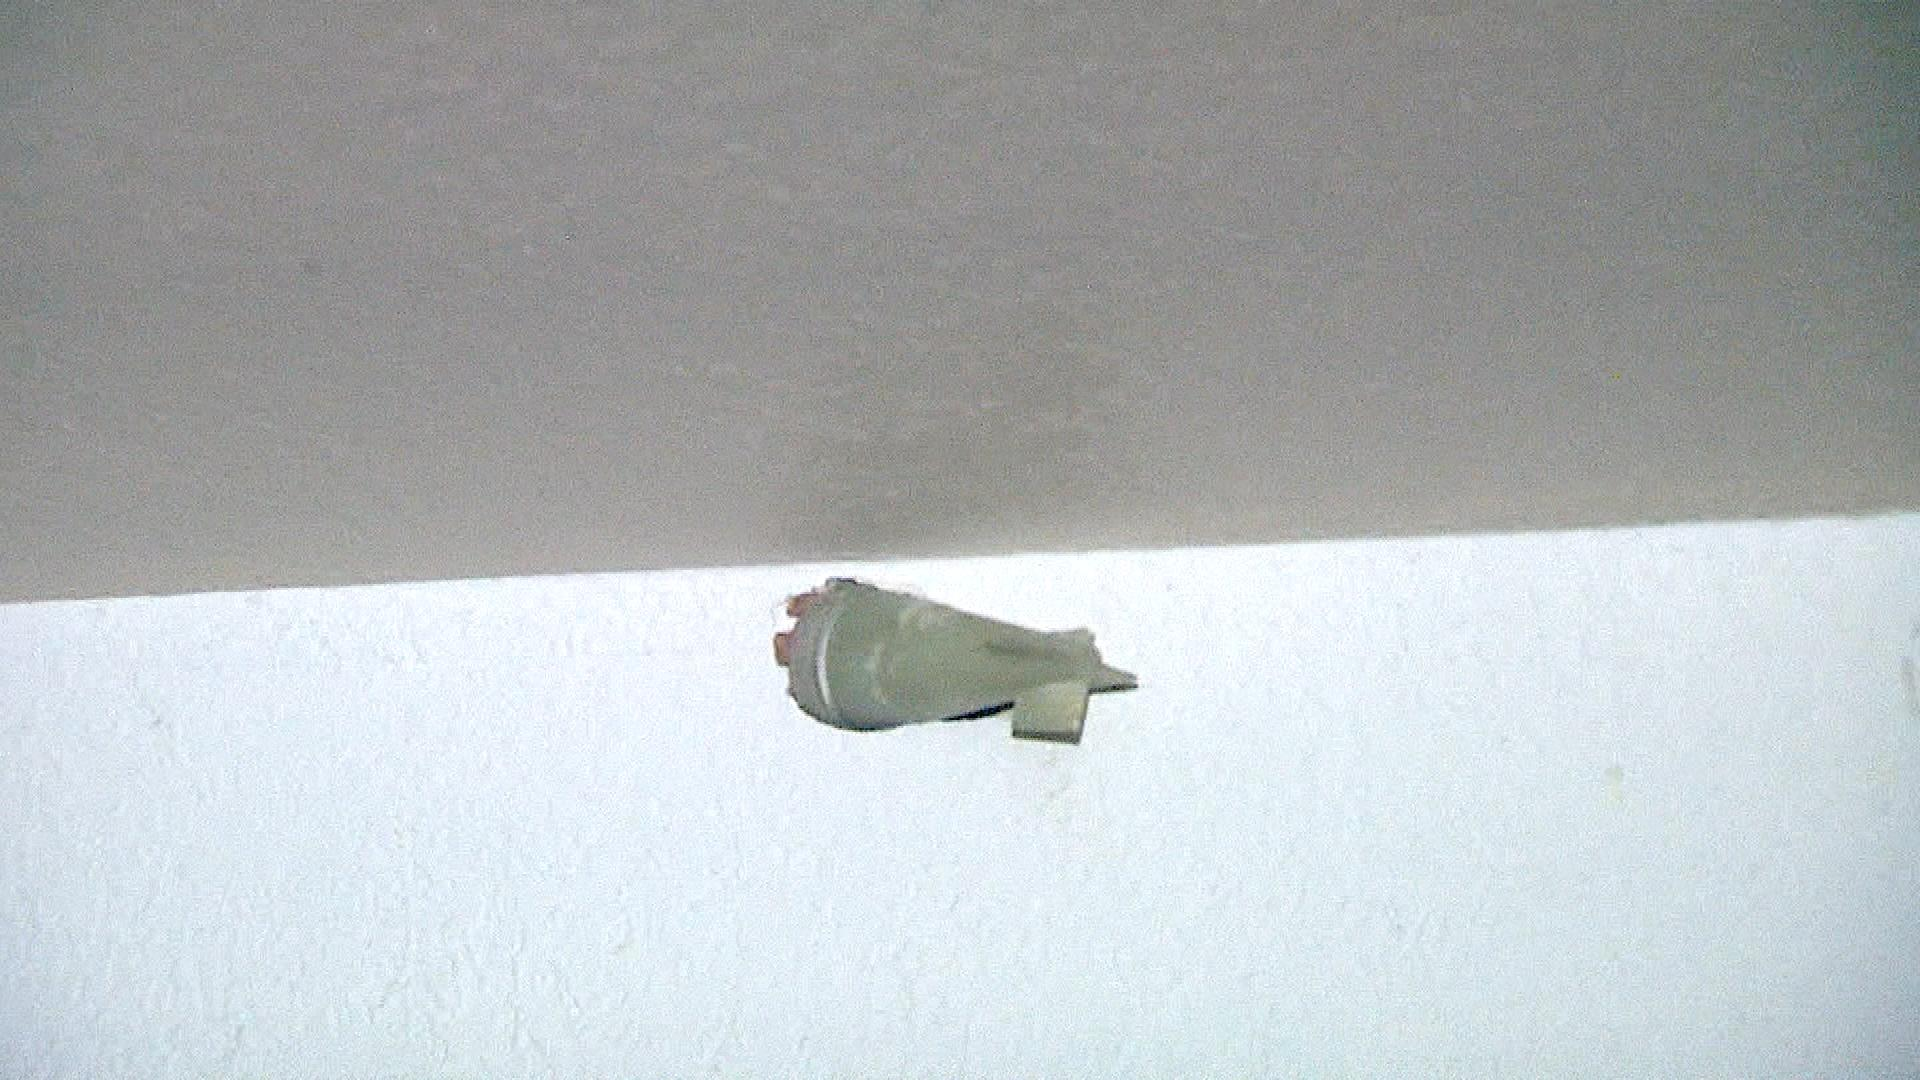 An explosive stuck in the wall (credit: CBS)